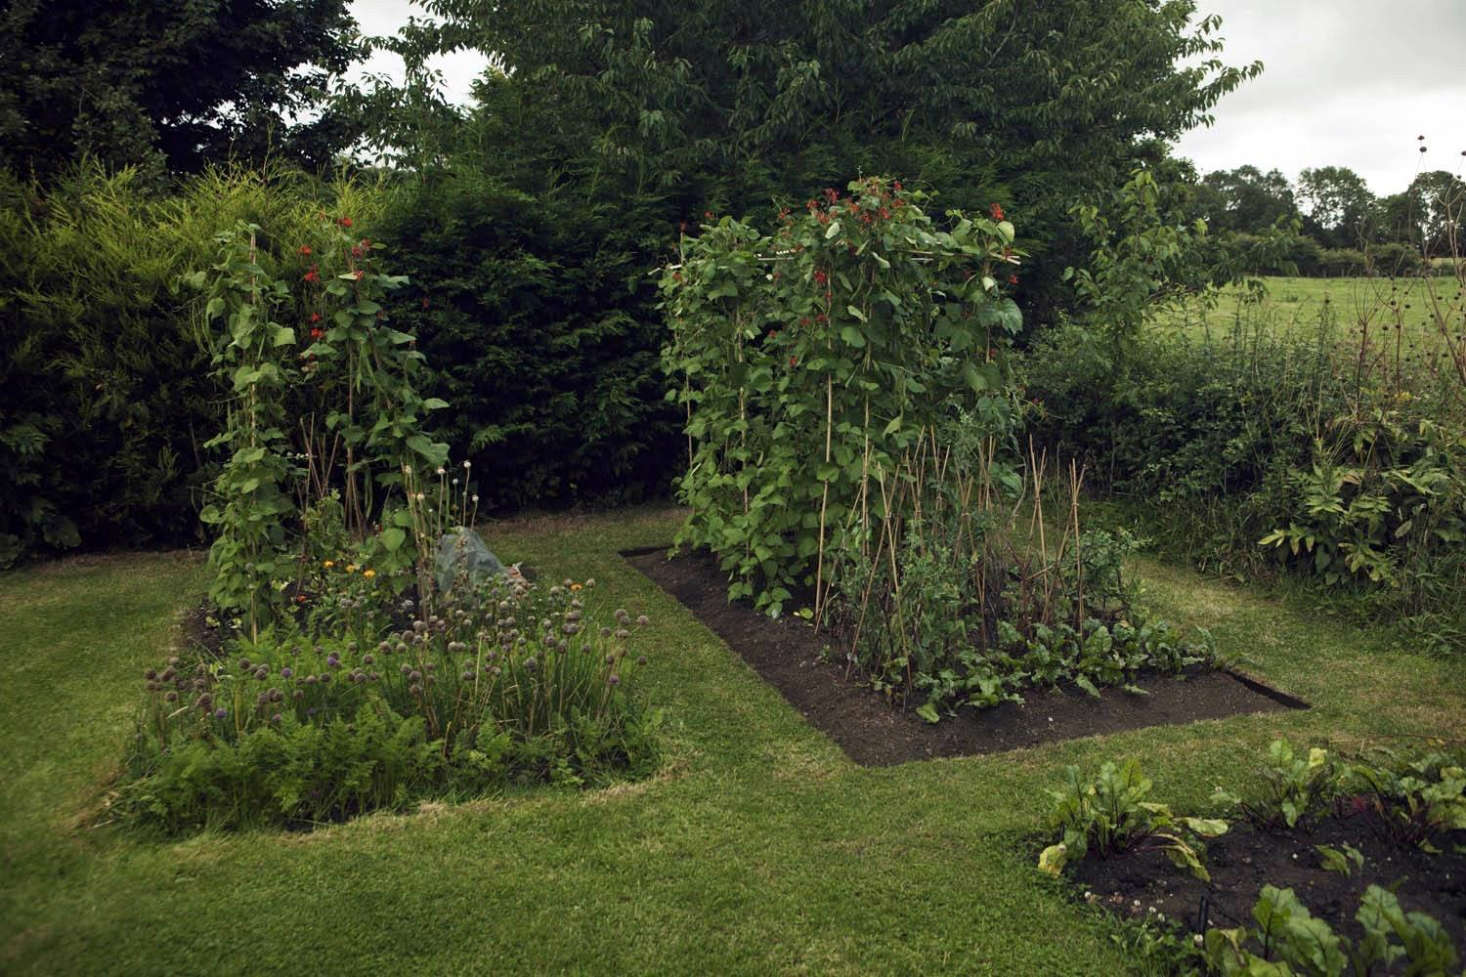 Can This Garden Be Saved My Vegetable Garden Looks Messy